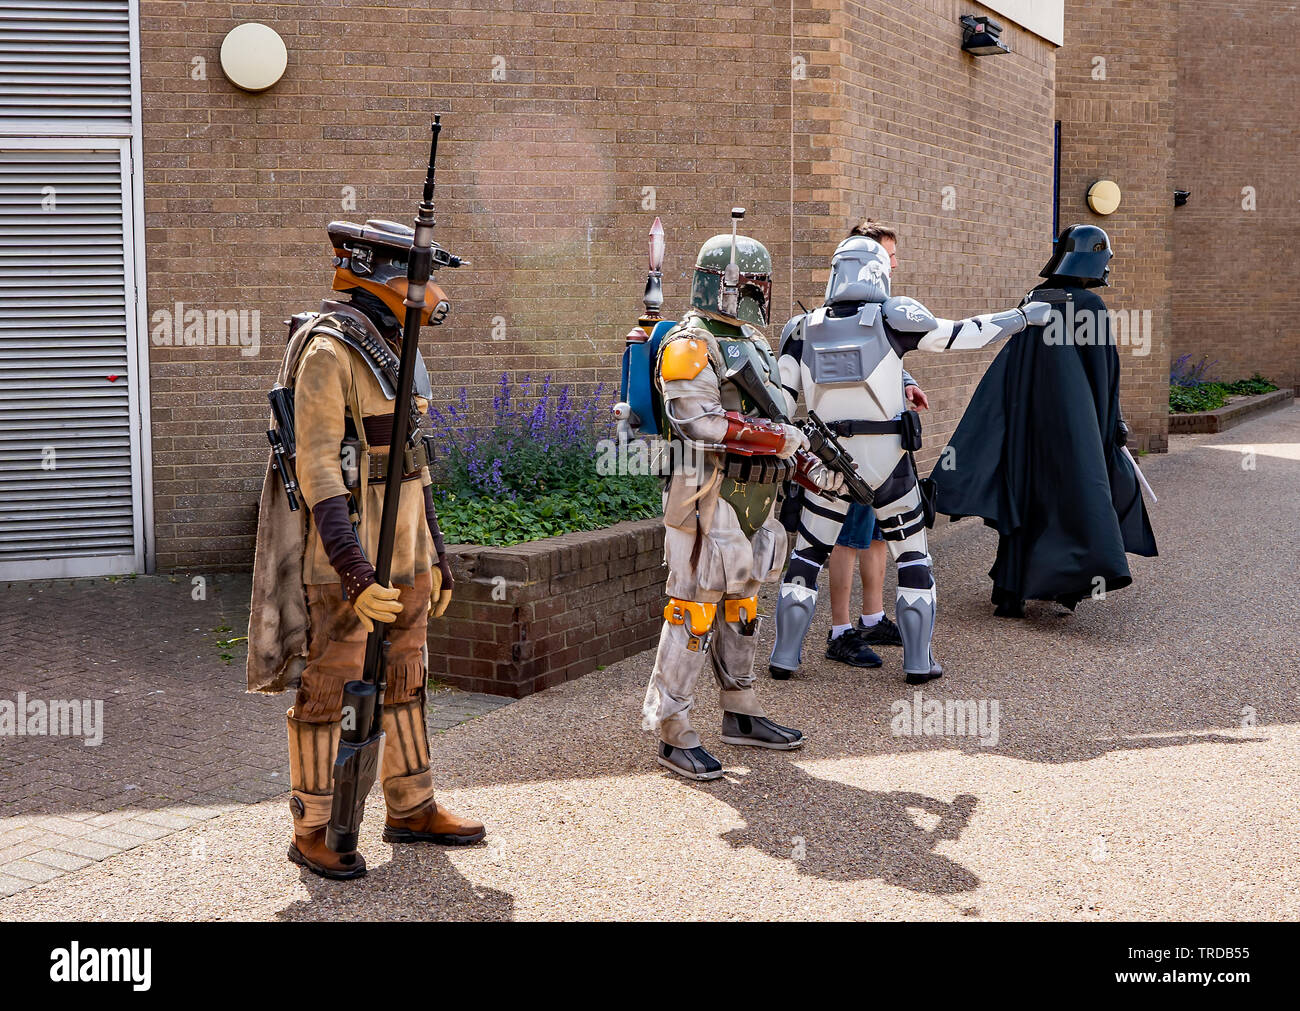 Great Yarmouth Comicon 2019 – Star Wars fans dressed up as Darth Vader and his henchmen henchmen standing outside the Comicon event in the seaside tow - Stock Image